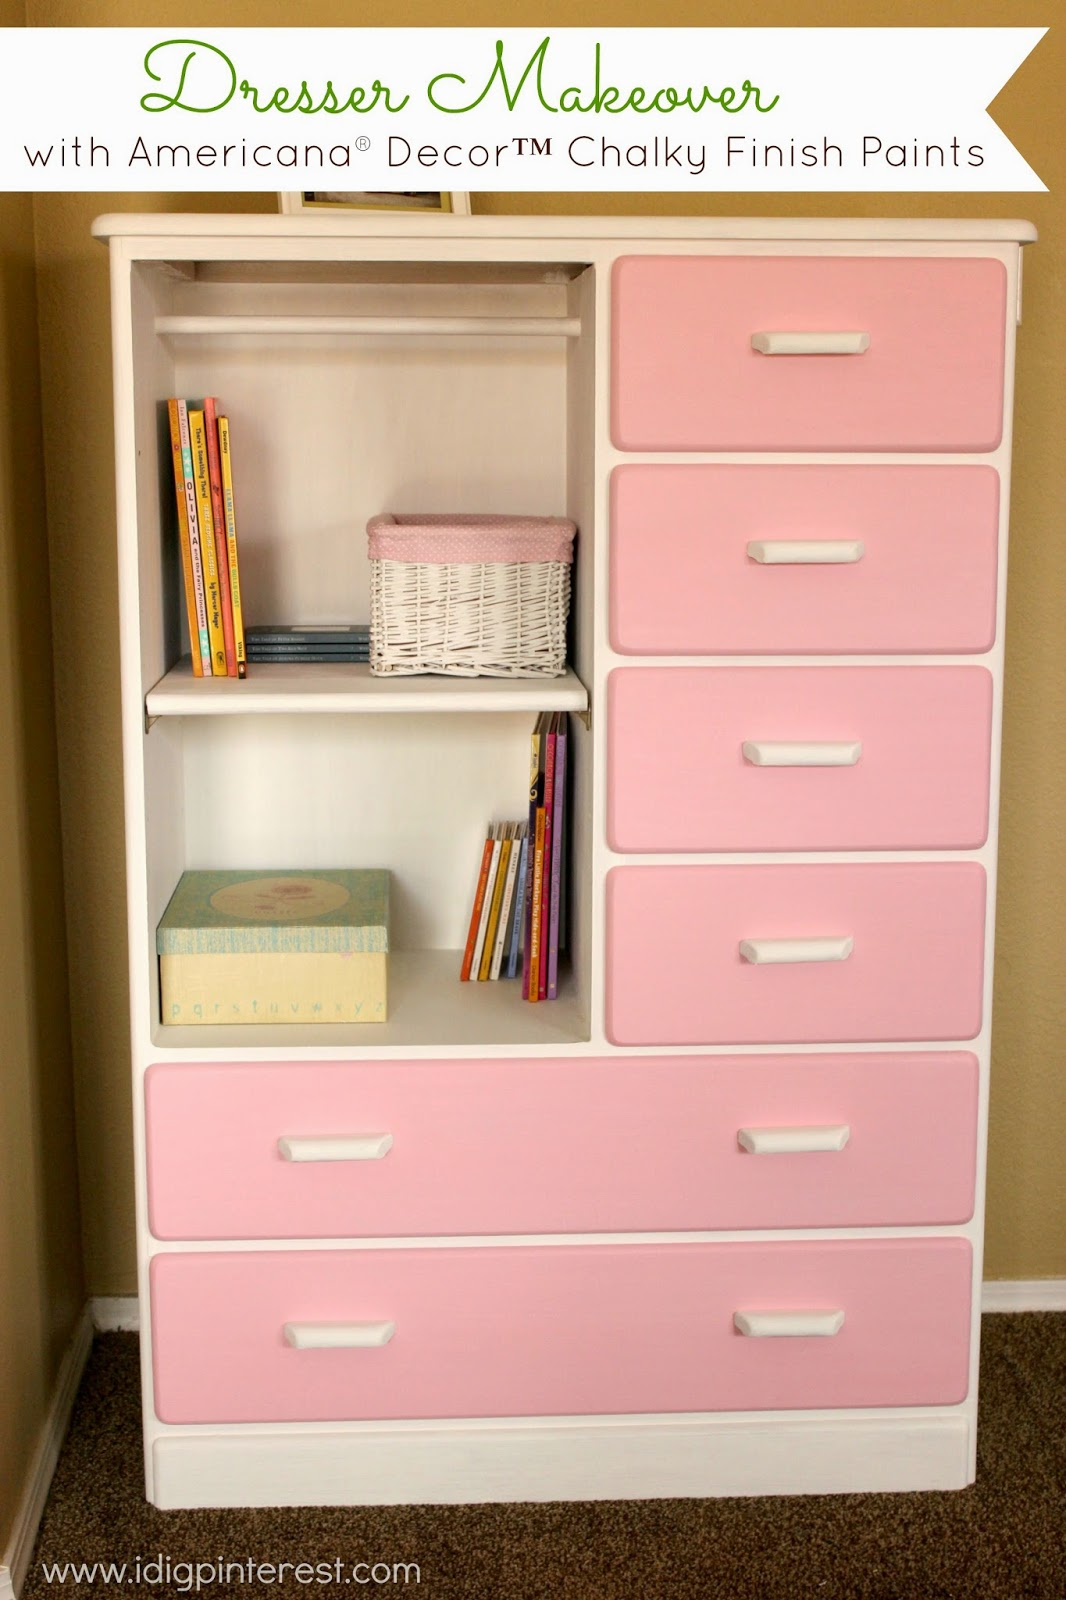 Dresser Makeover With Americana 174 Decor Chalky Finish